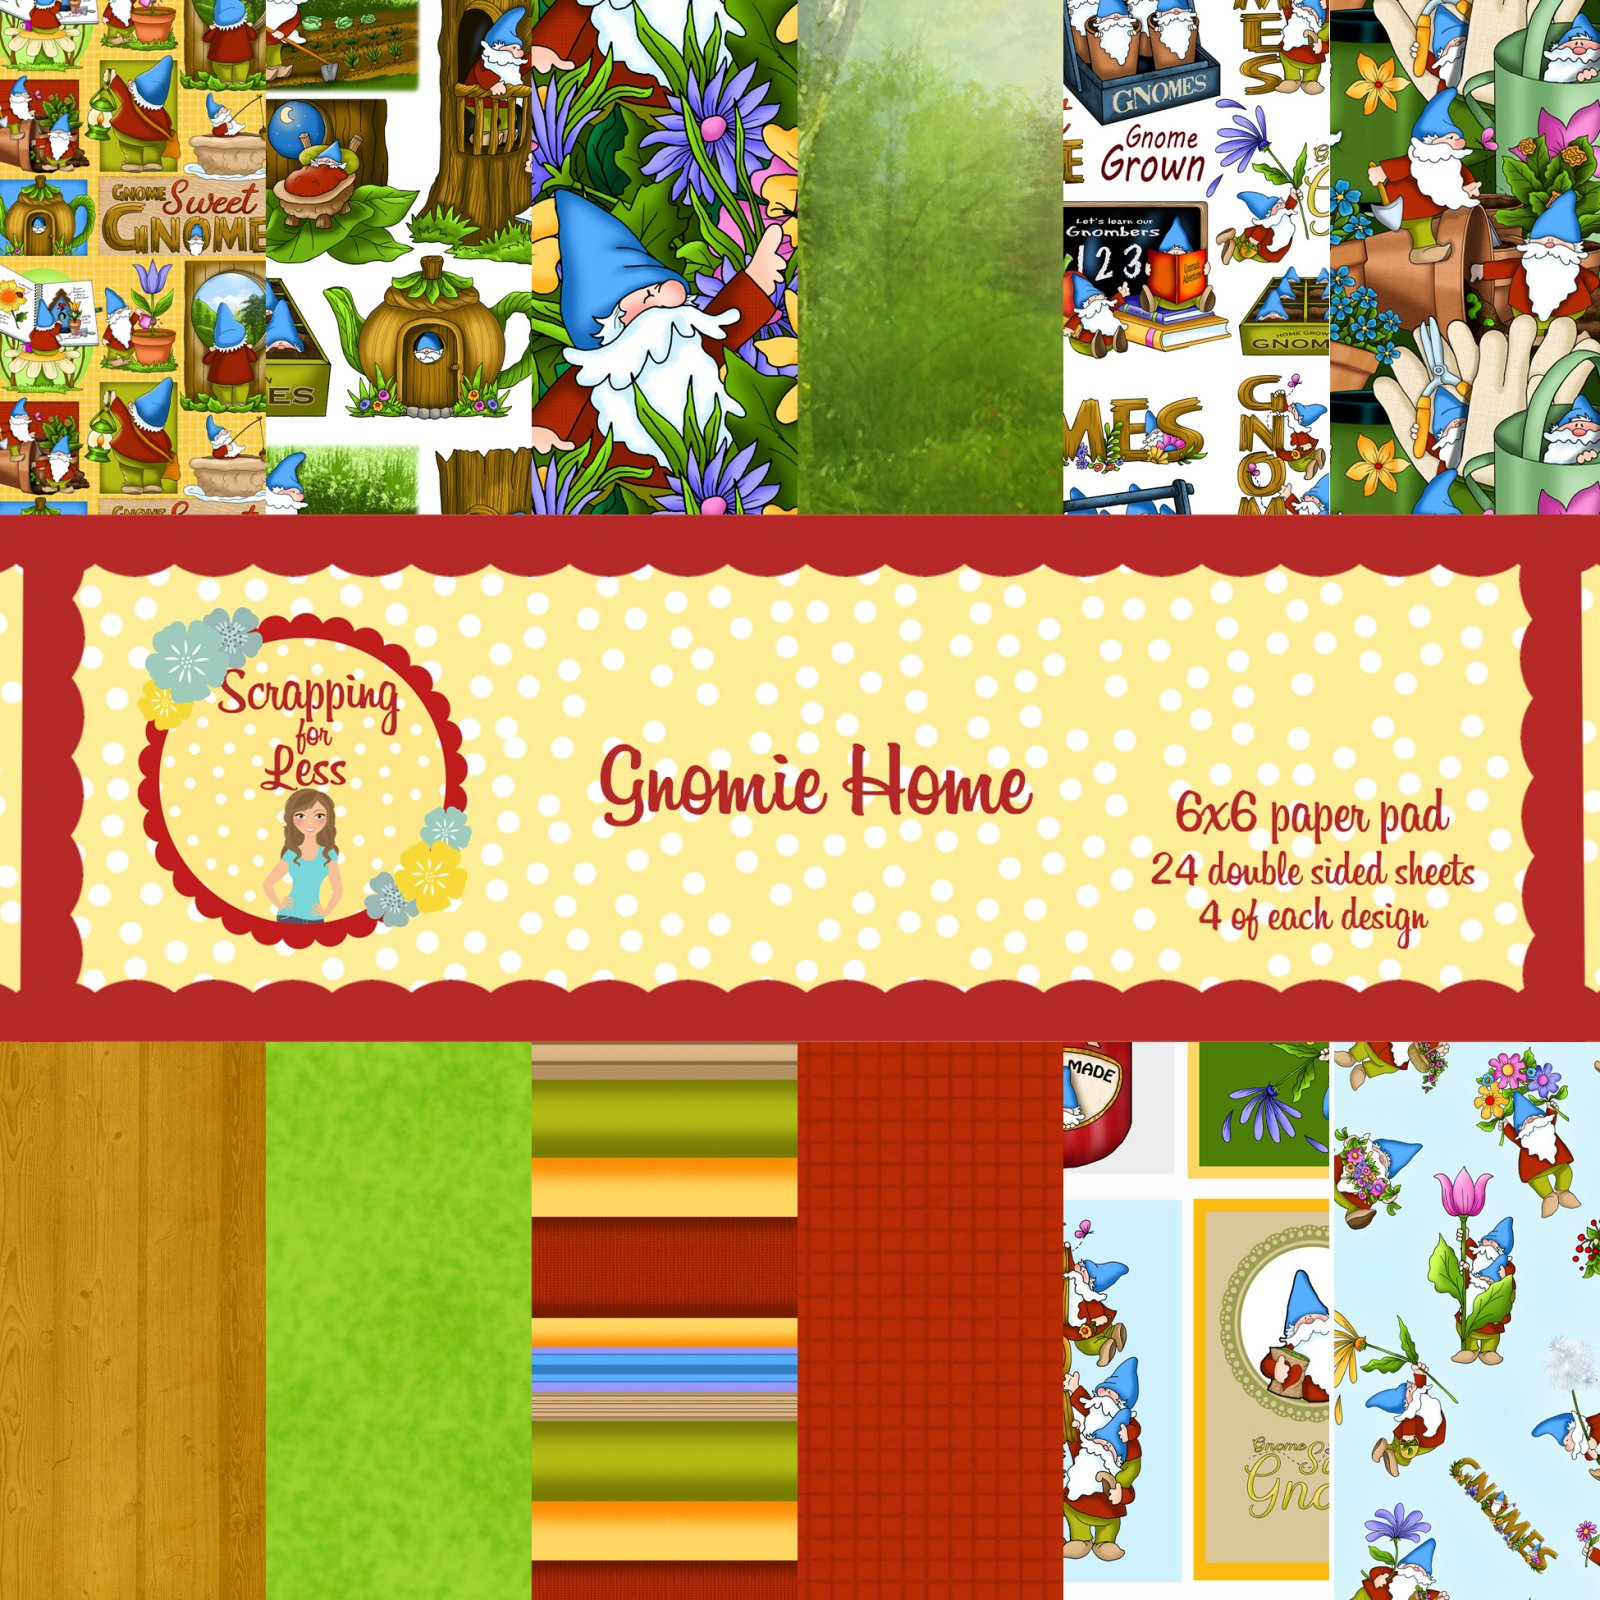 Scrapping for Less Gnomie Home 6x6 Paper Pad